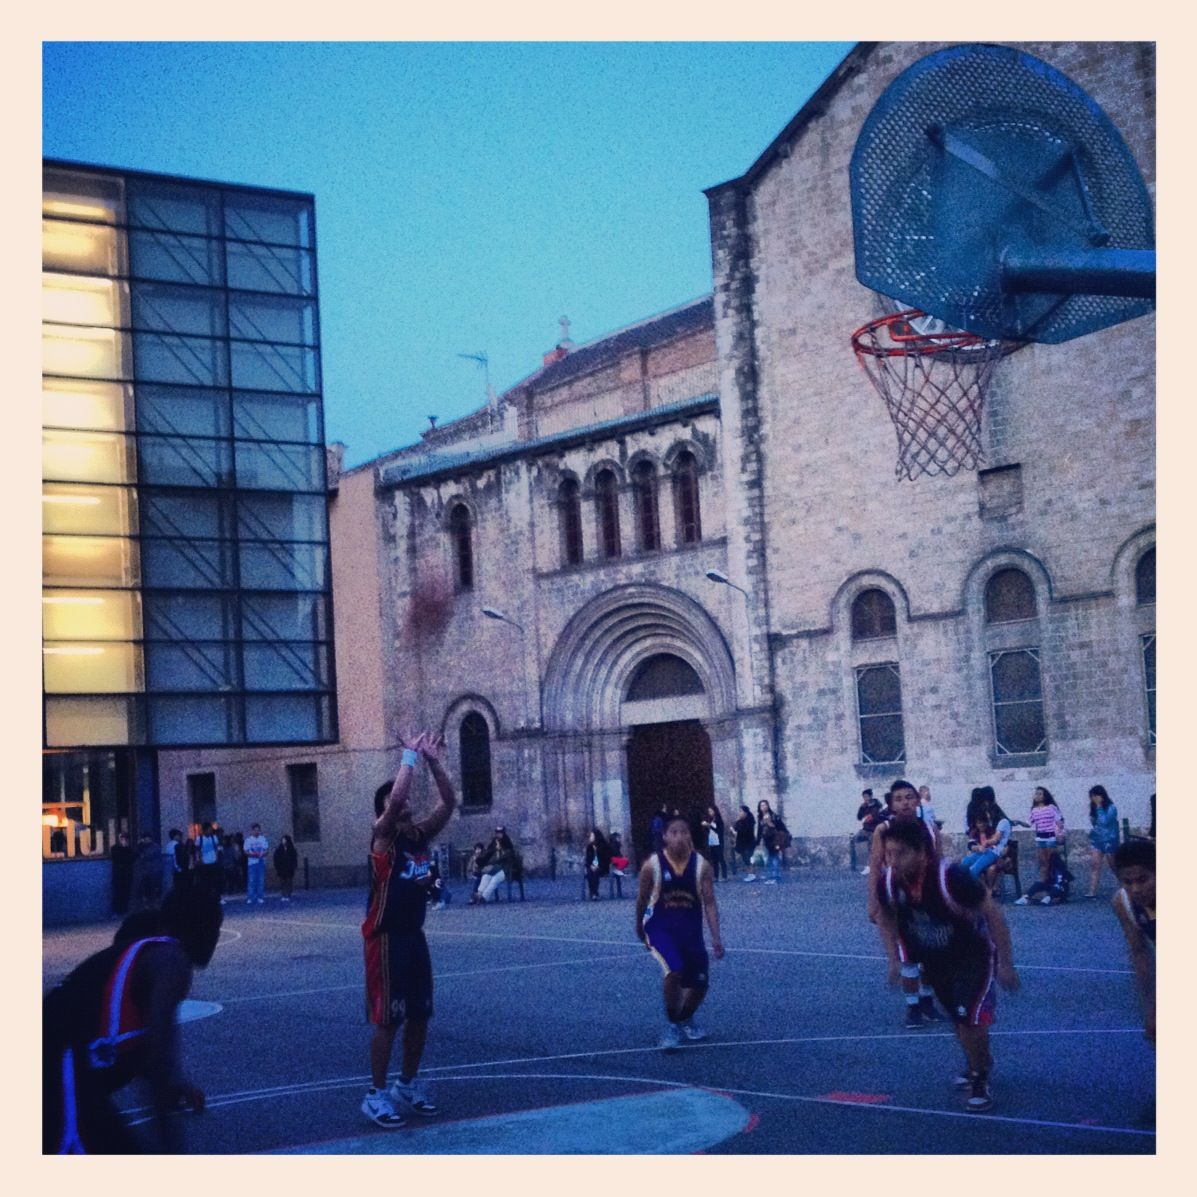 Baloncesto en el Raval What is the sound of this picture? #baloncesto #basket #raval #barcelona #street #happy #instagood